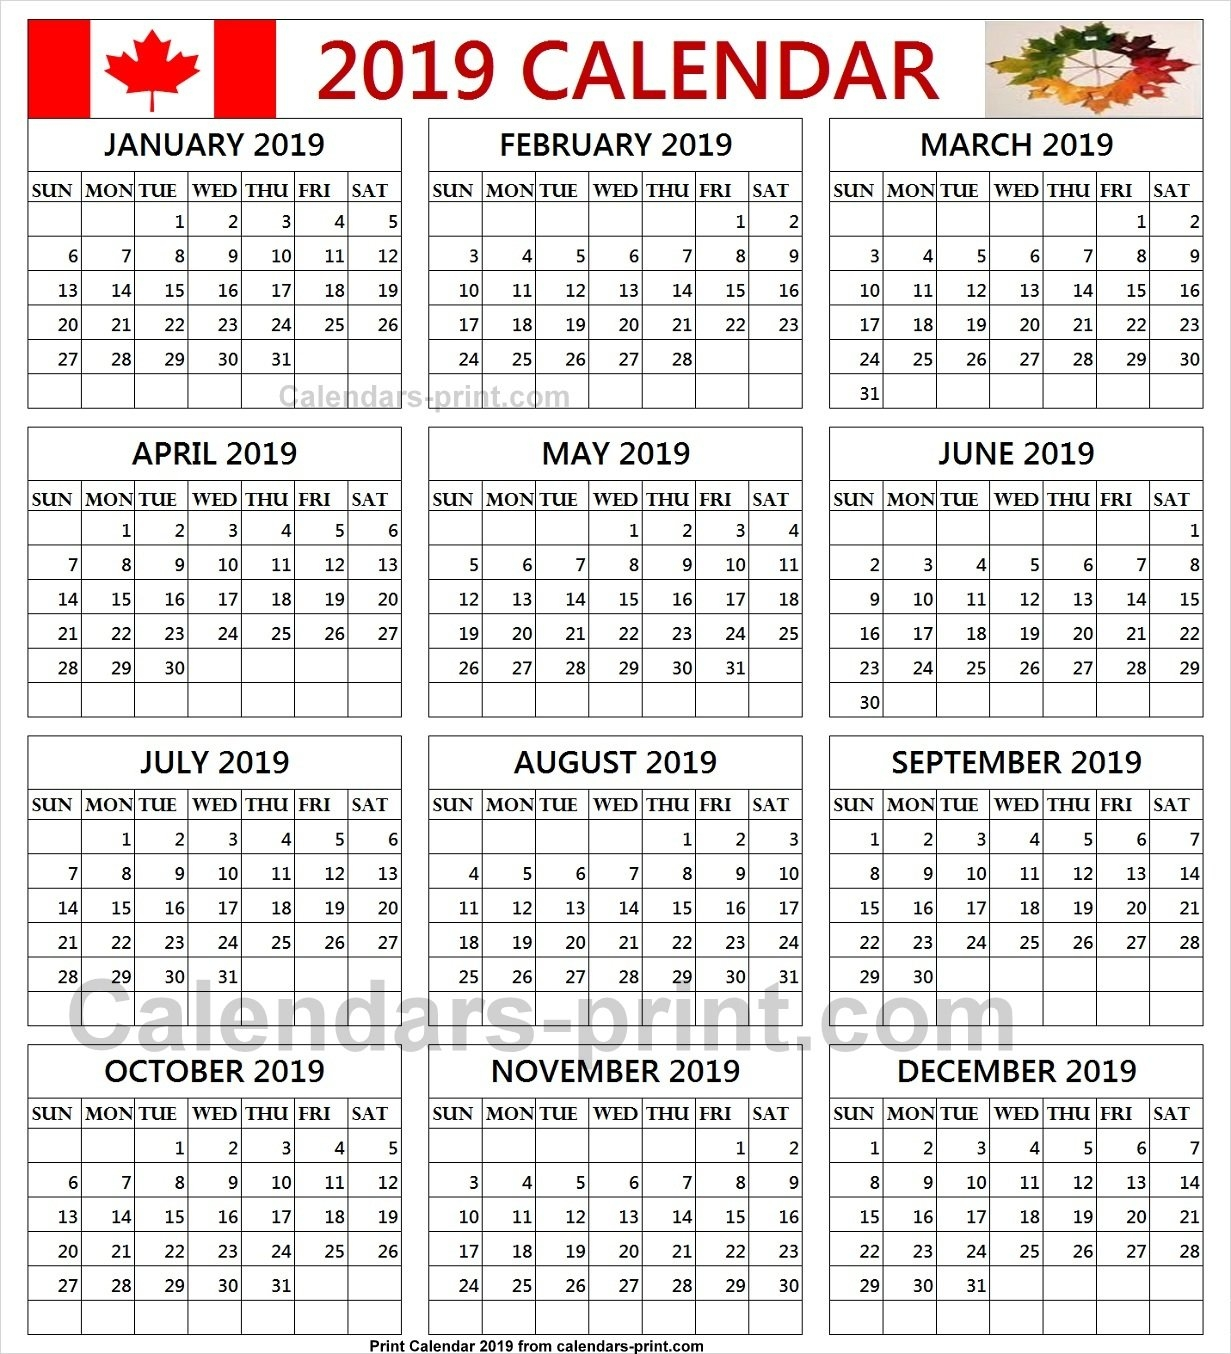 Free Calendar 2019 Canada Printable Template With Notes | Holidays Calendar Year 2019 Canada